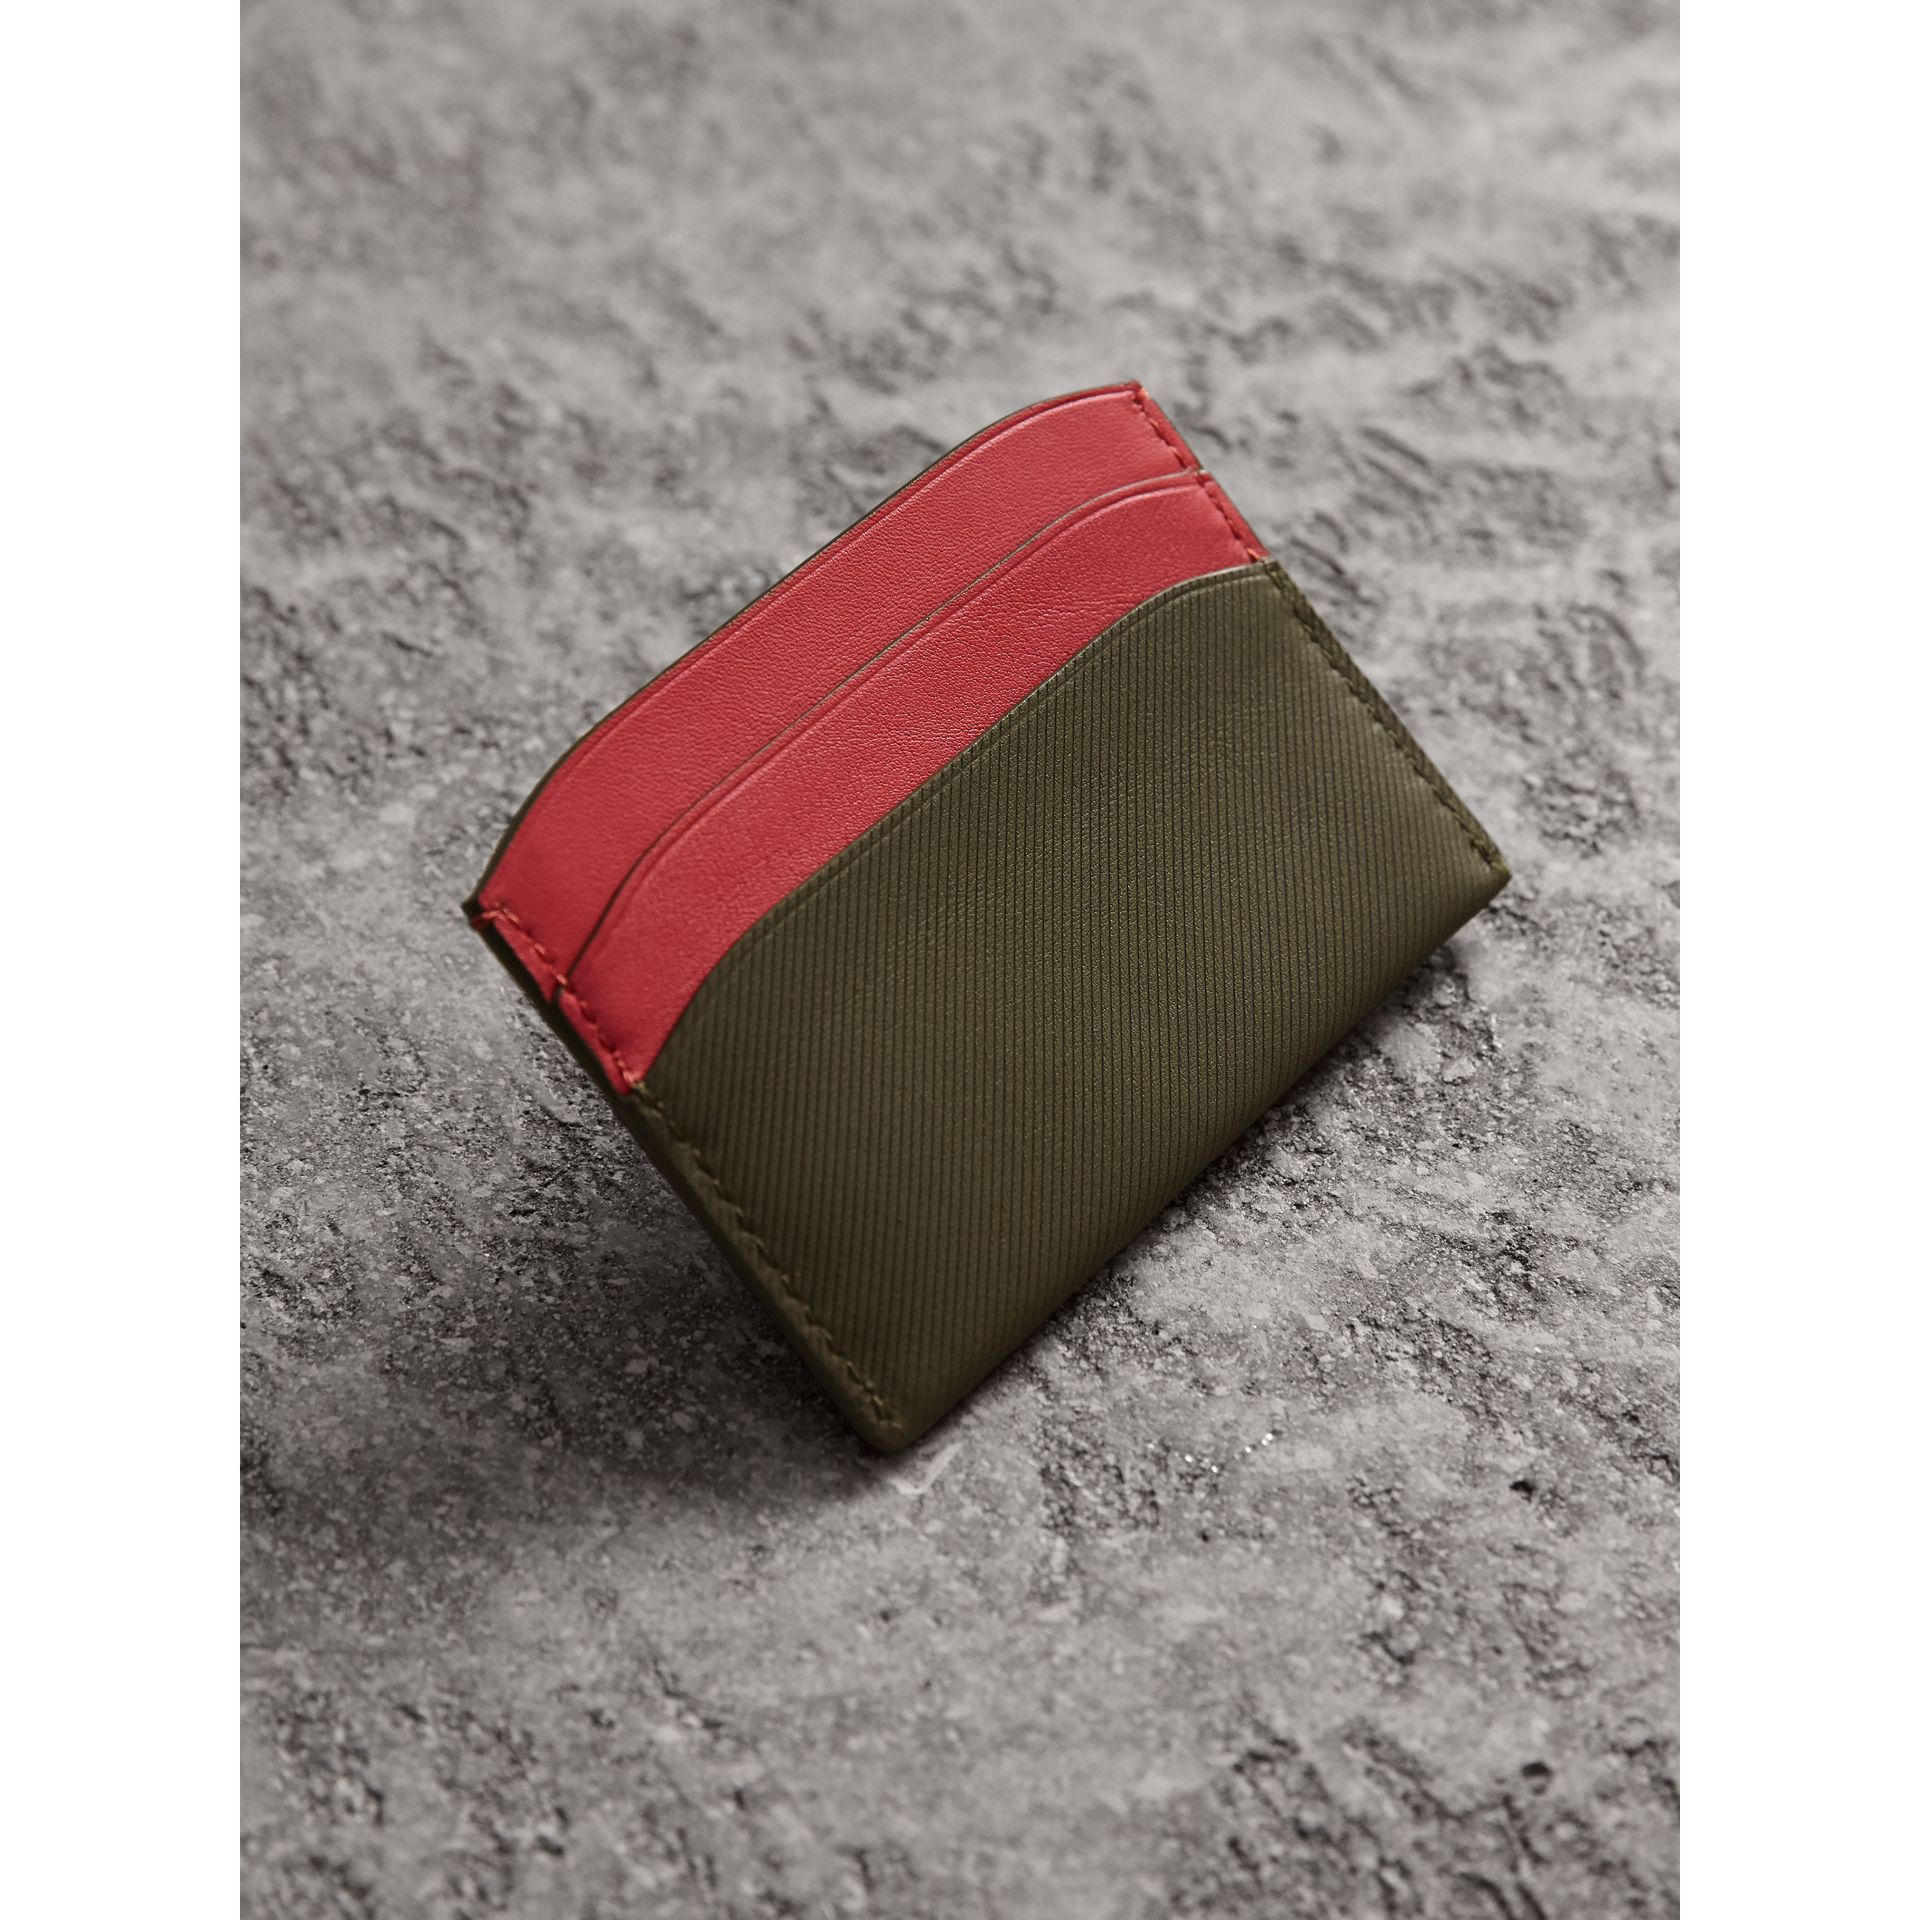 Two-tone Trench Leather Card Case in Mss Green/ Blsm Pink - Women | Burberry - gallery image 3